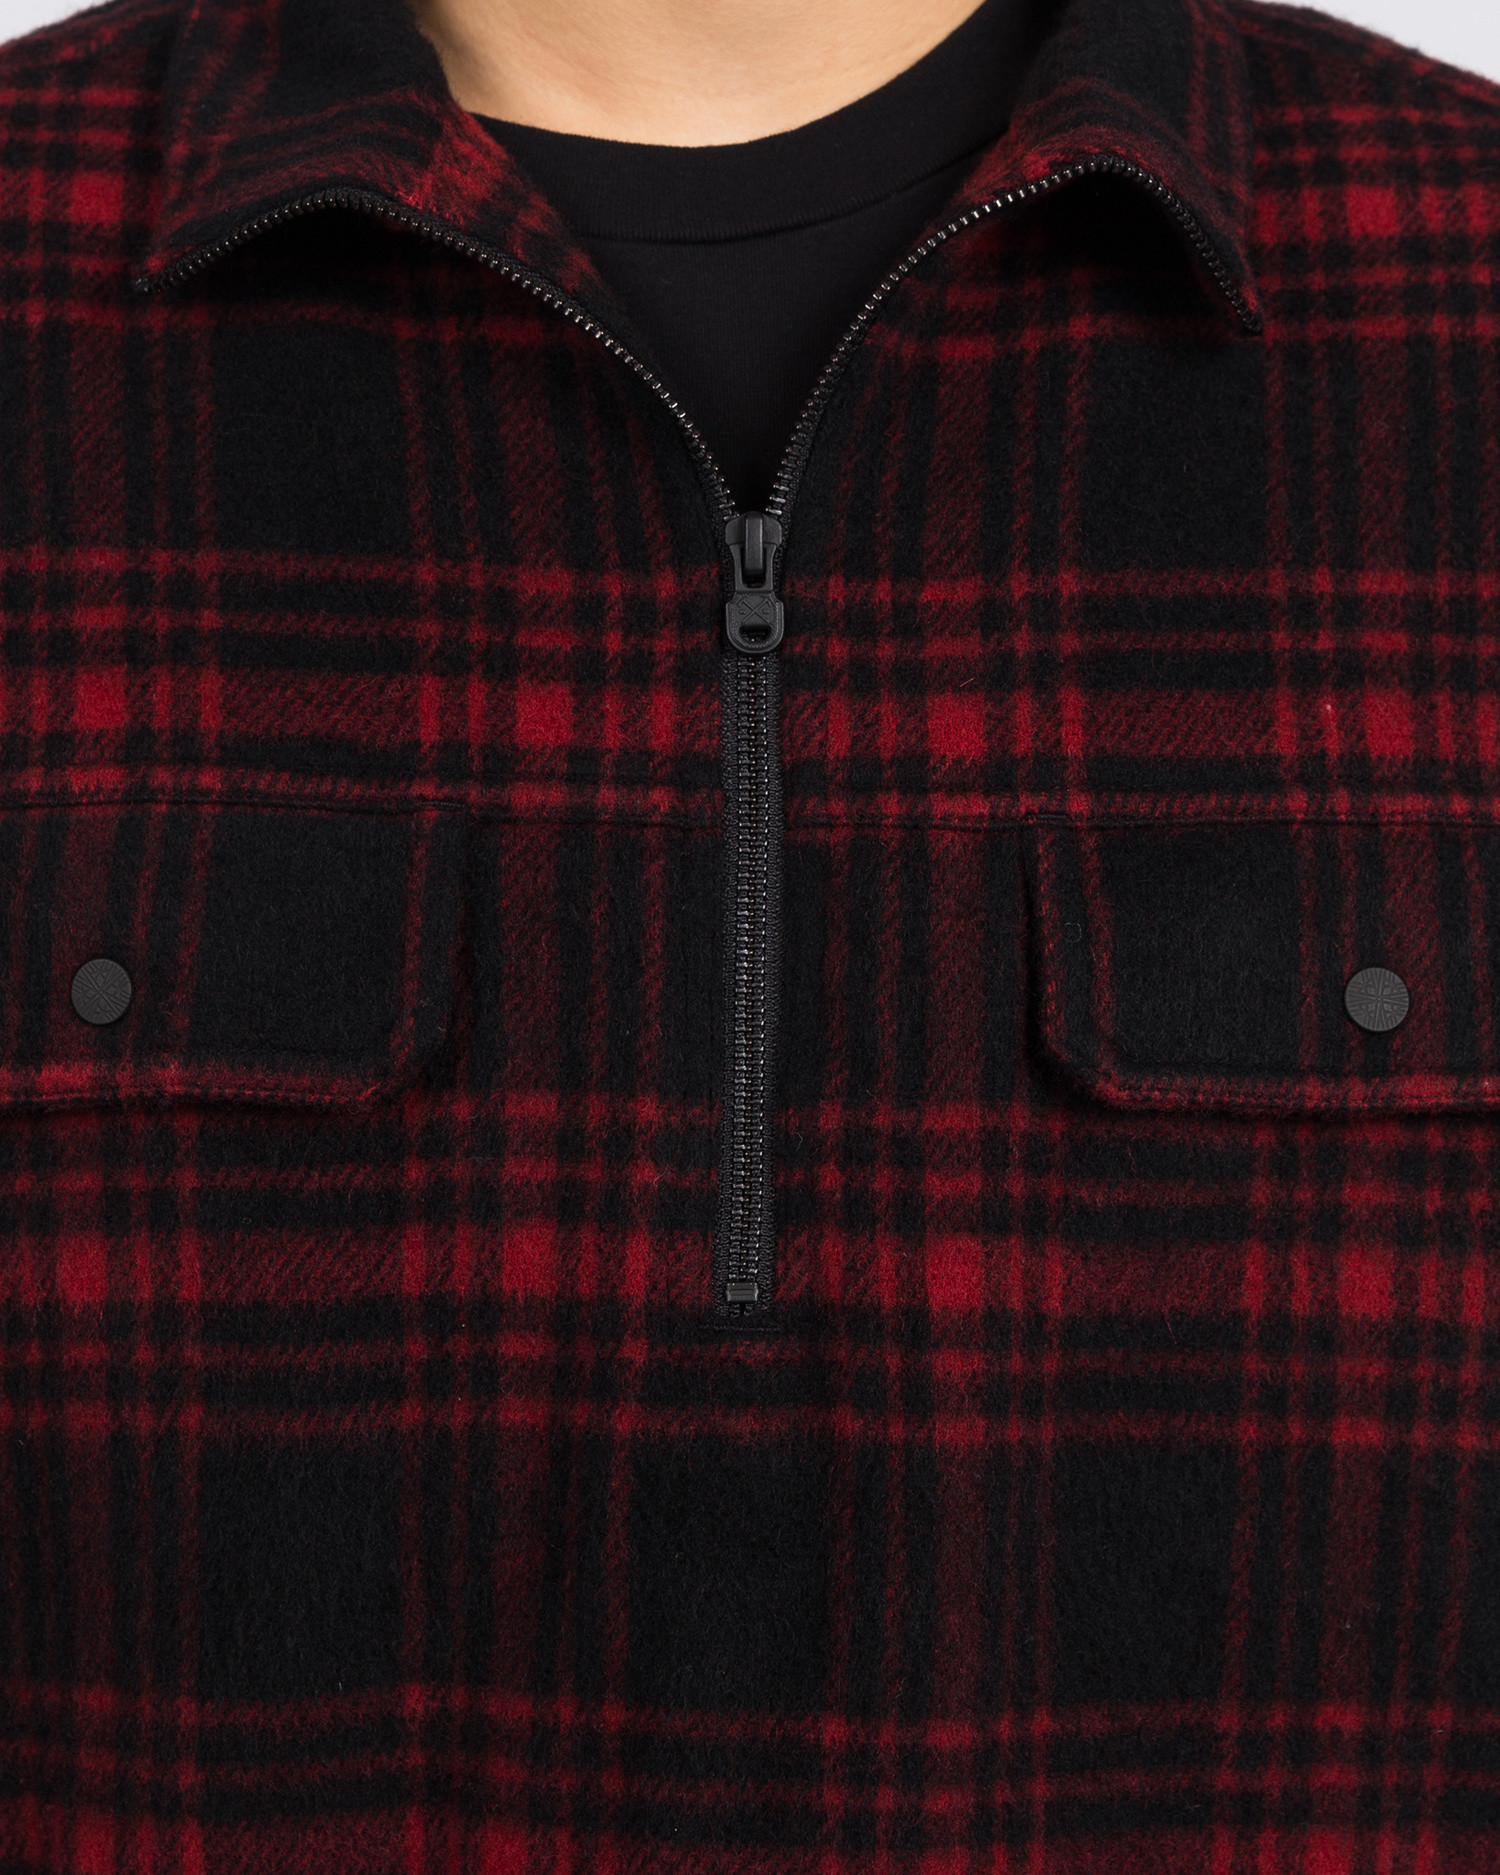 White Mountaineering Check Shaggy Big Pullover Shirt